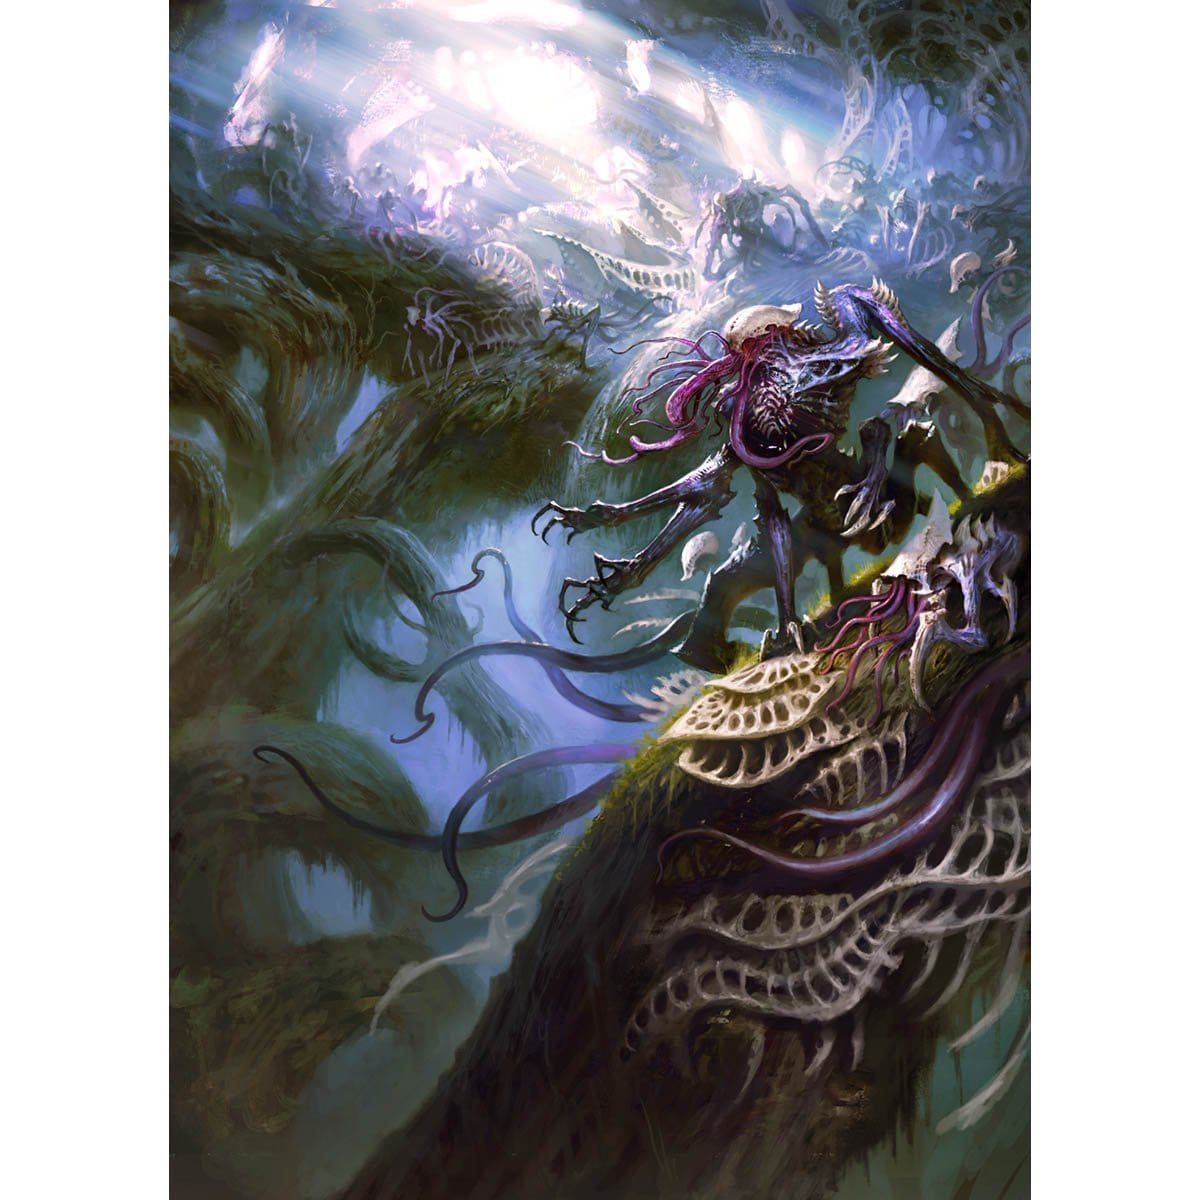 From Beyond Print - Print - Original Magic Art - Accessories for Magic the Gathering and other card games